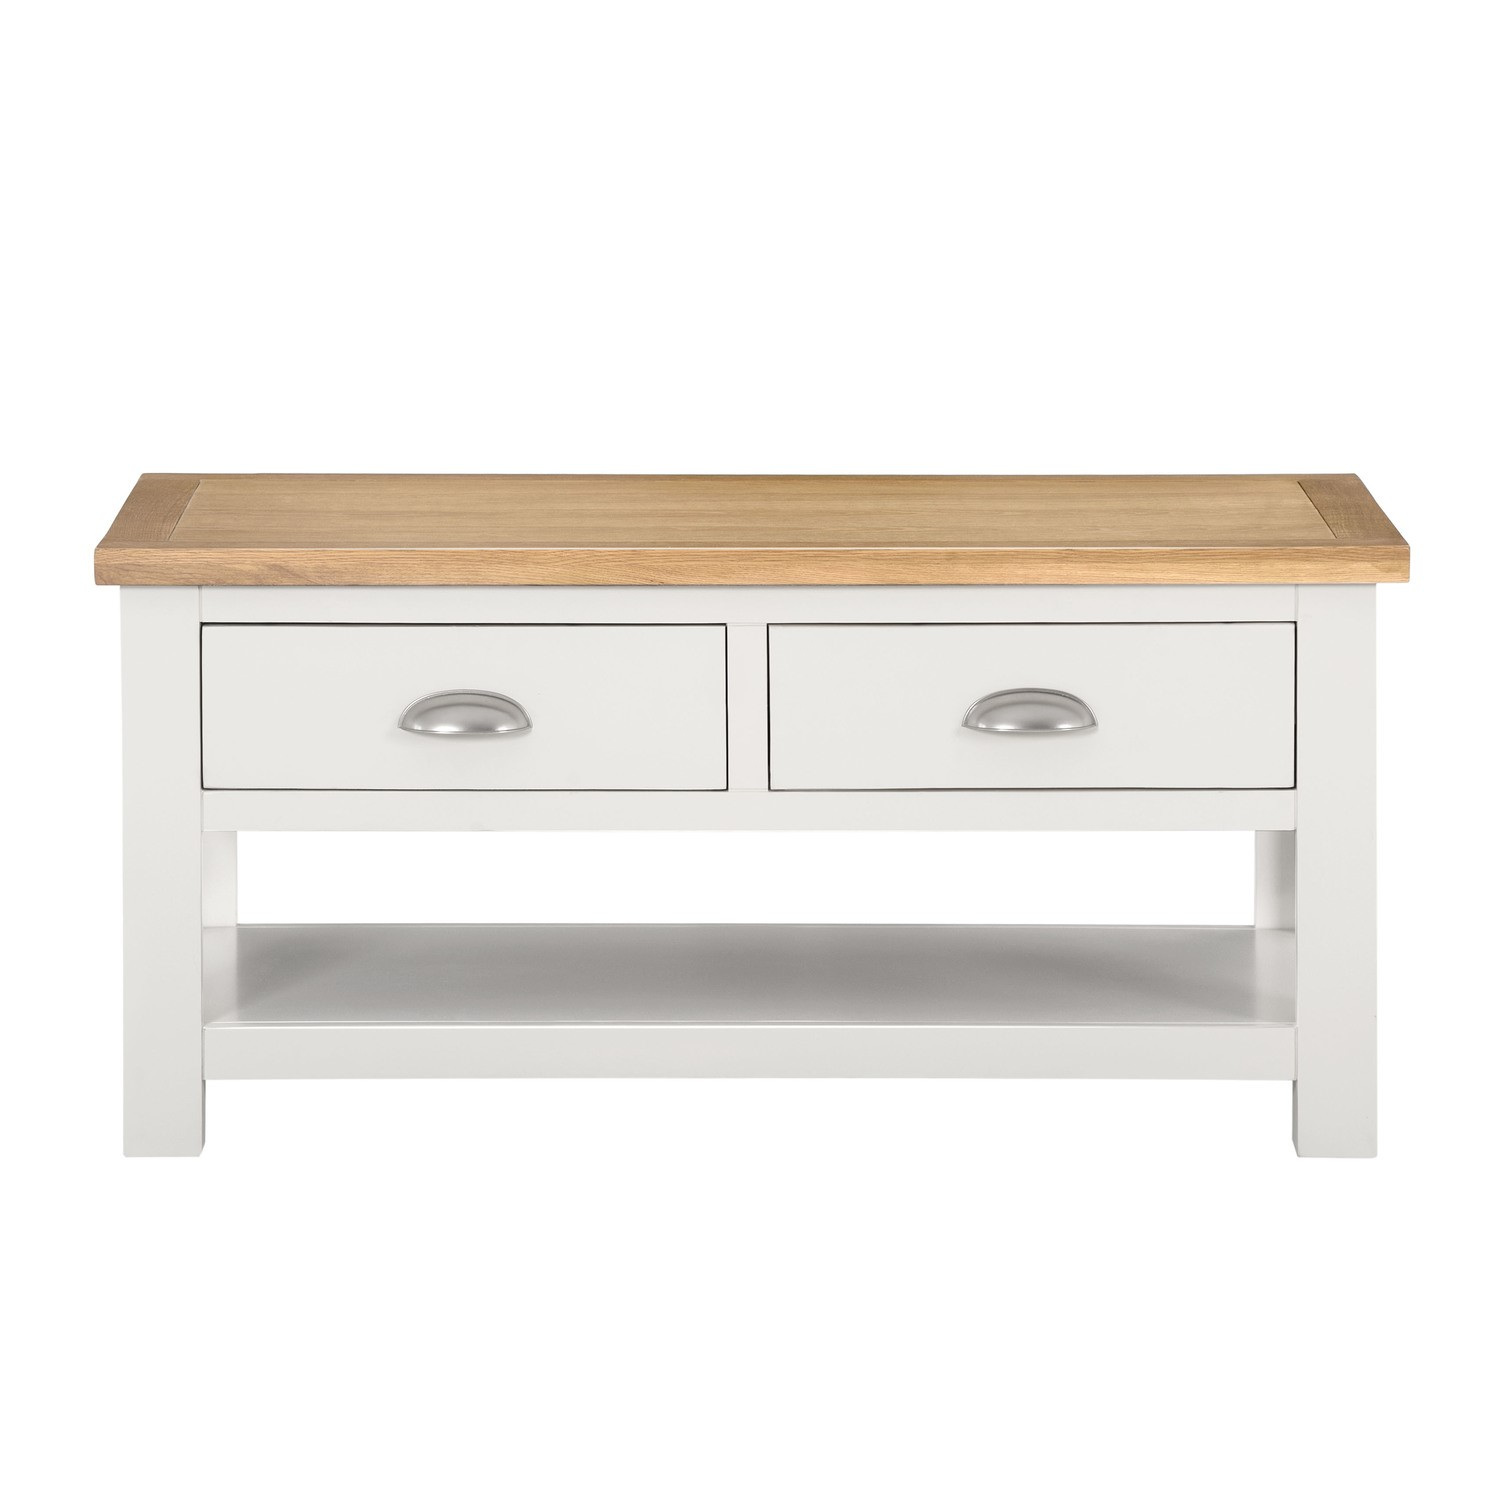 Willow farmhouse wood coffee table with storage drawers cream light o wil005